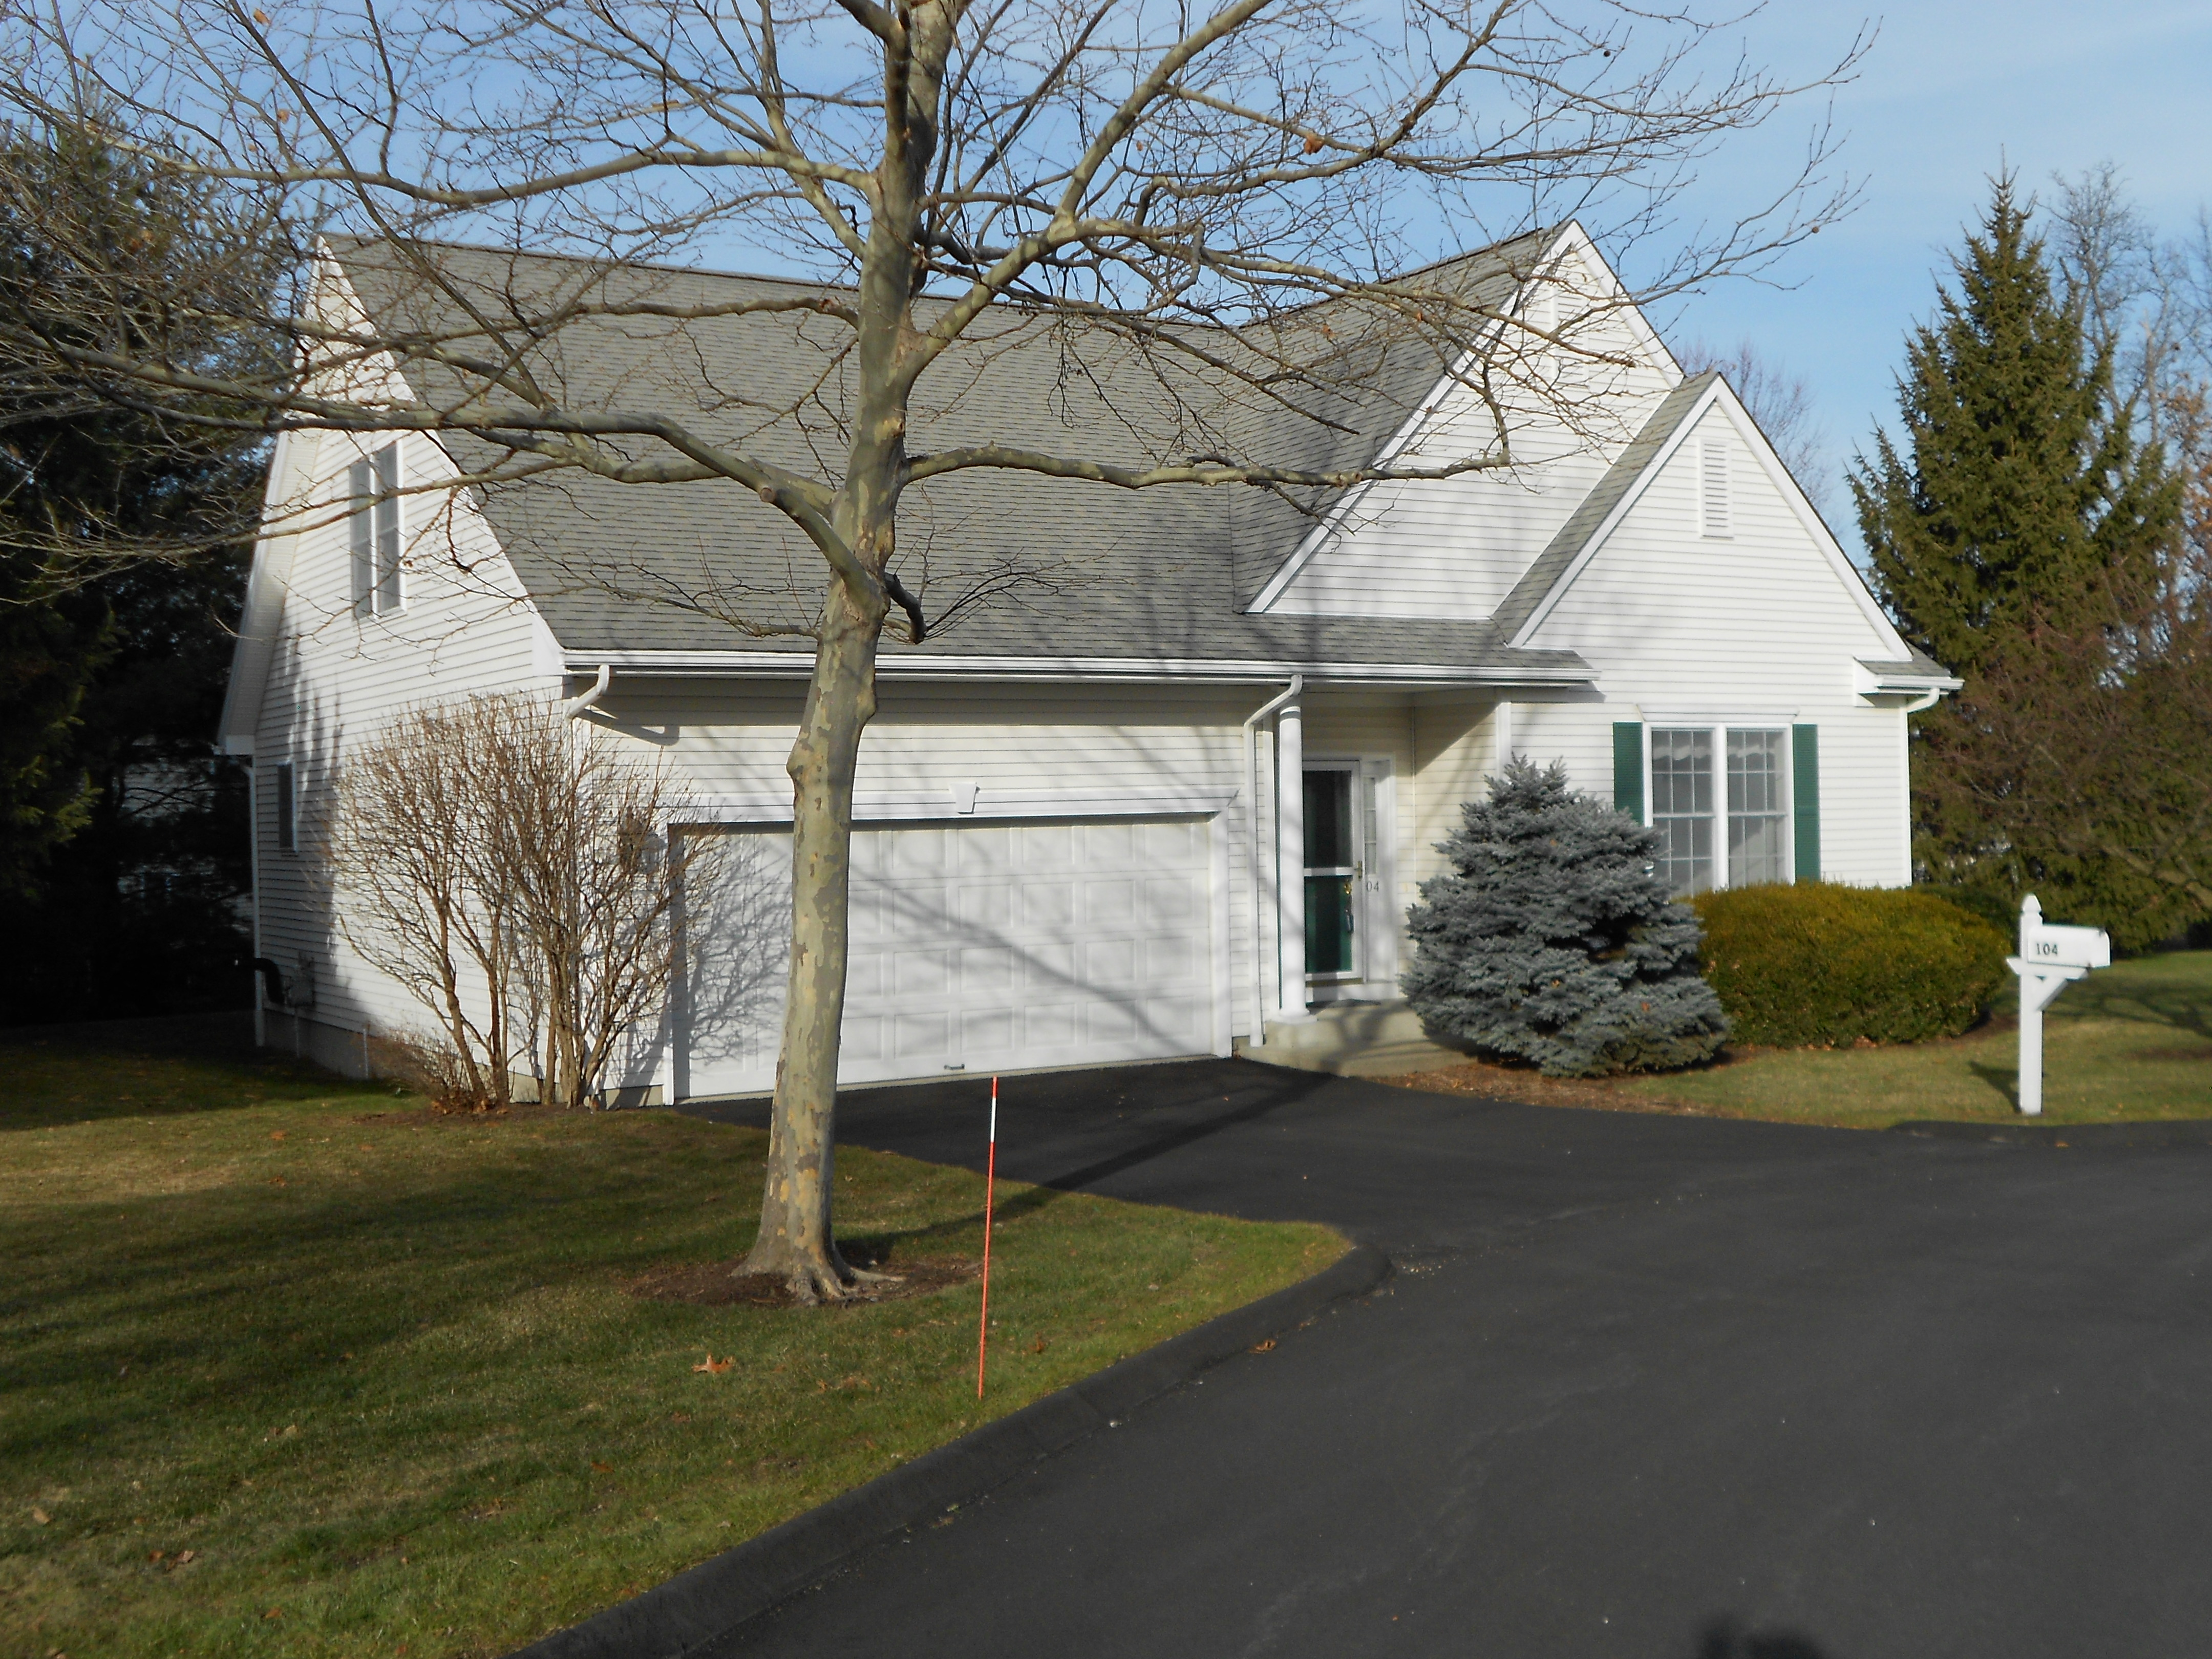 Single Family Home for Sale at Colonial with Condo Benefits 104 Silversmith Drive 104 Danbury, Connecticut, 06811 United States